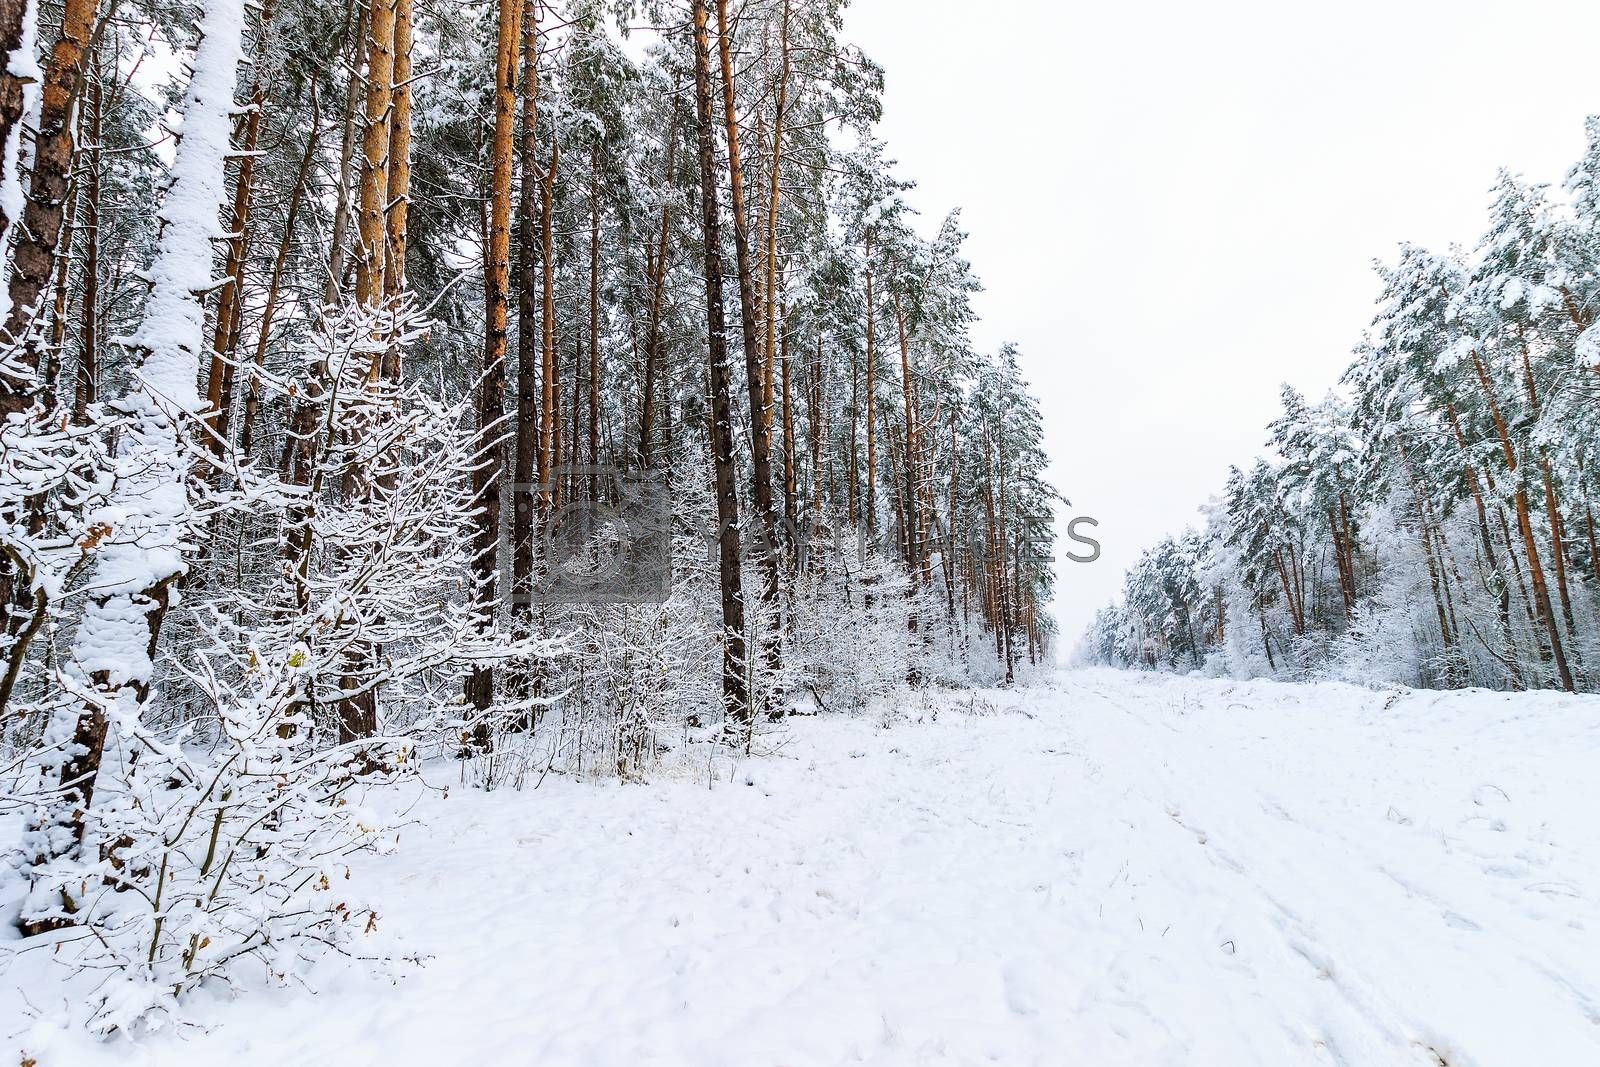 Landscape of winter pine forest covered with frost at mainly cloudy weather. First snow at autumn season.